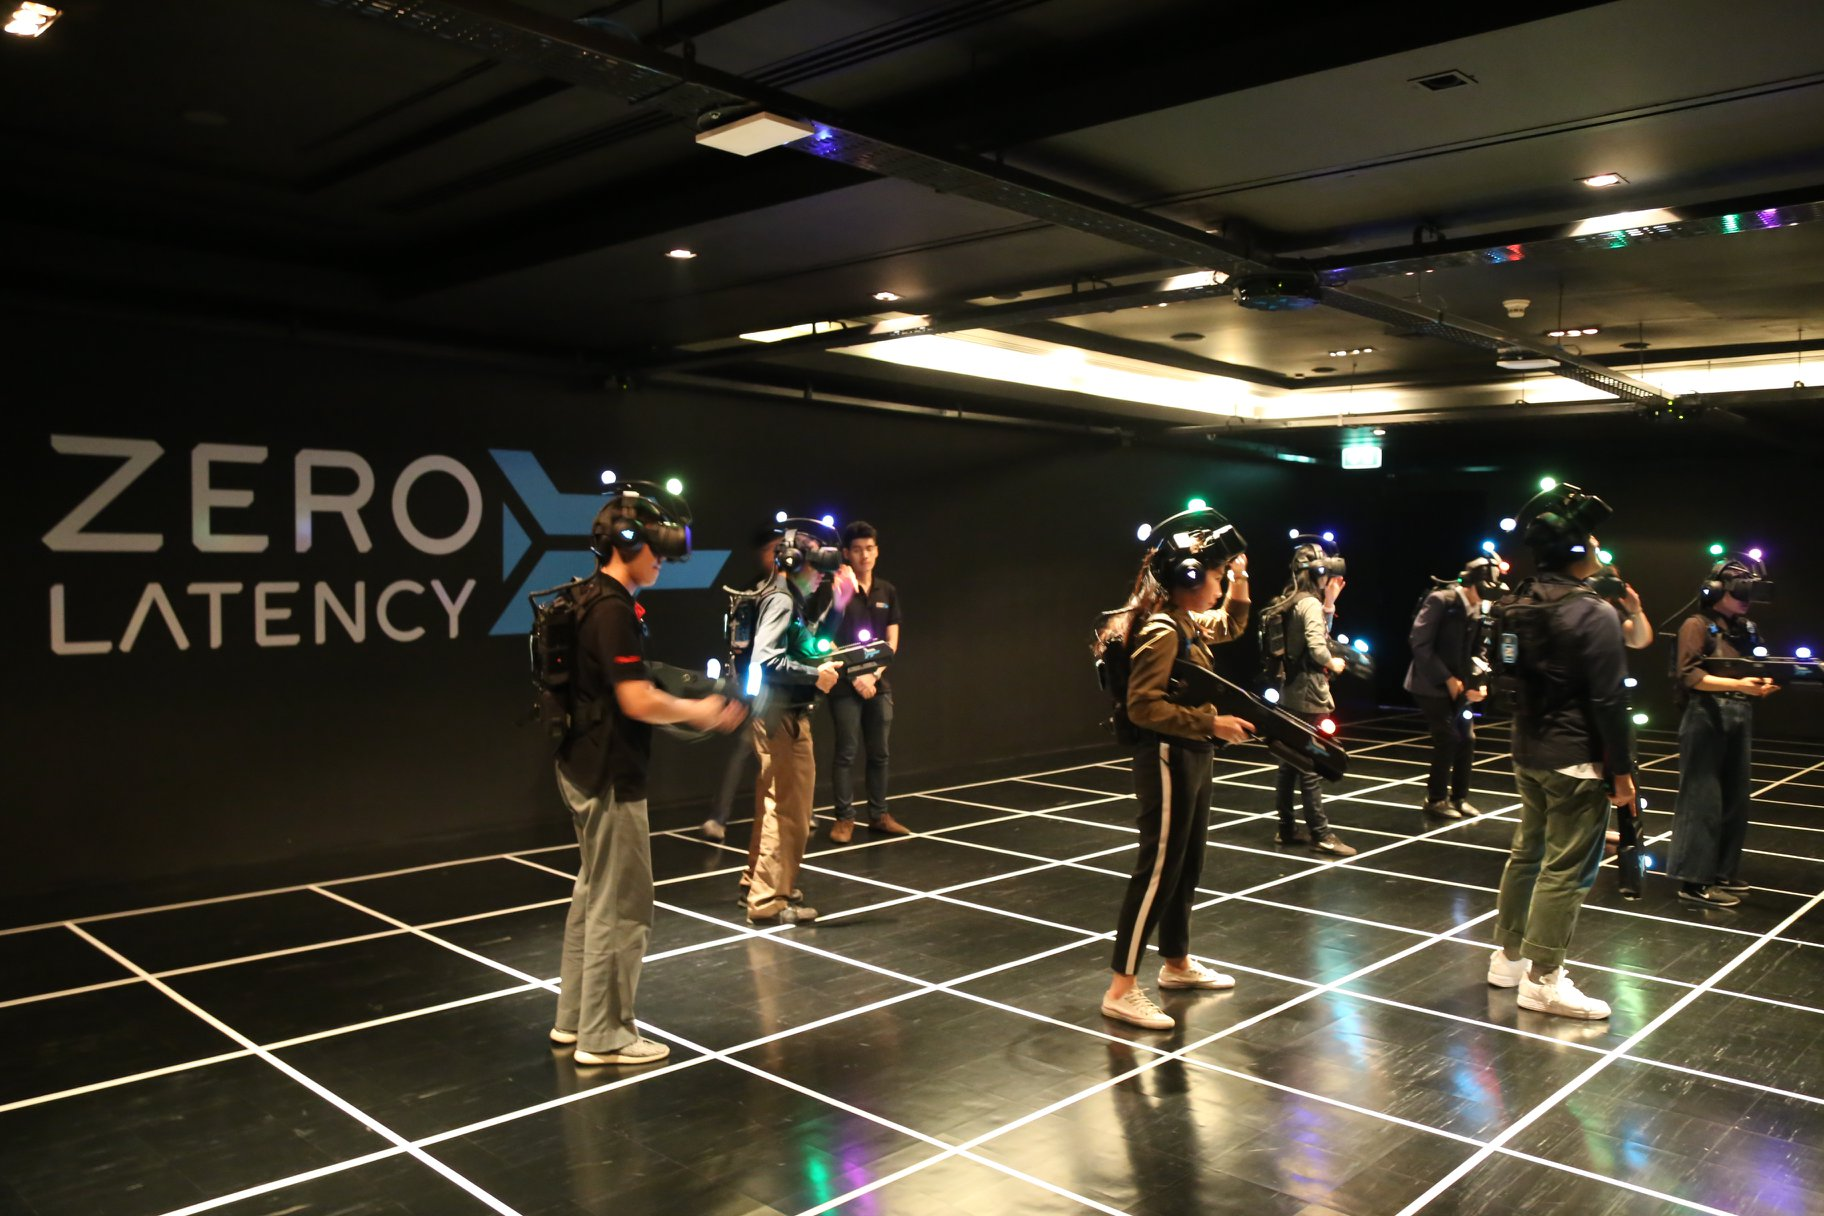 Zero Latency Thailand